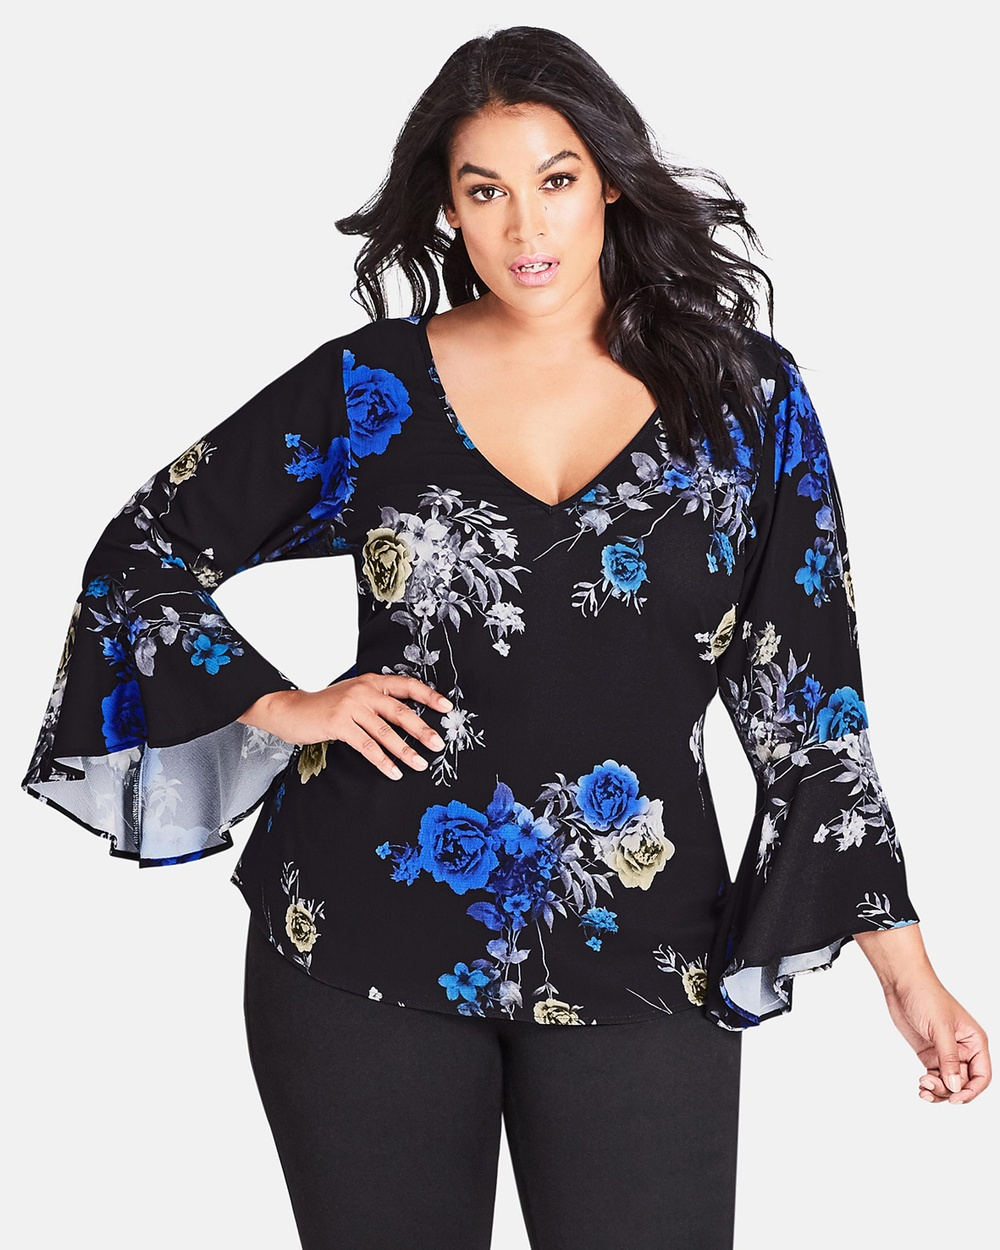 City Chic Electric Bell Top Tops Electric Bouquet Electric Bell Top